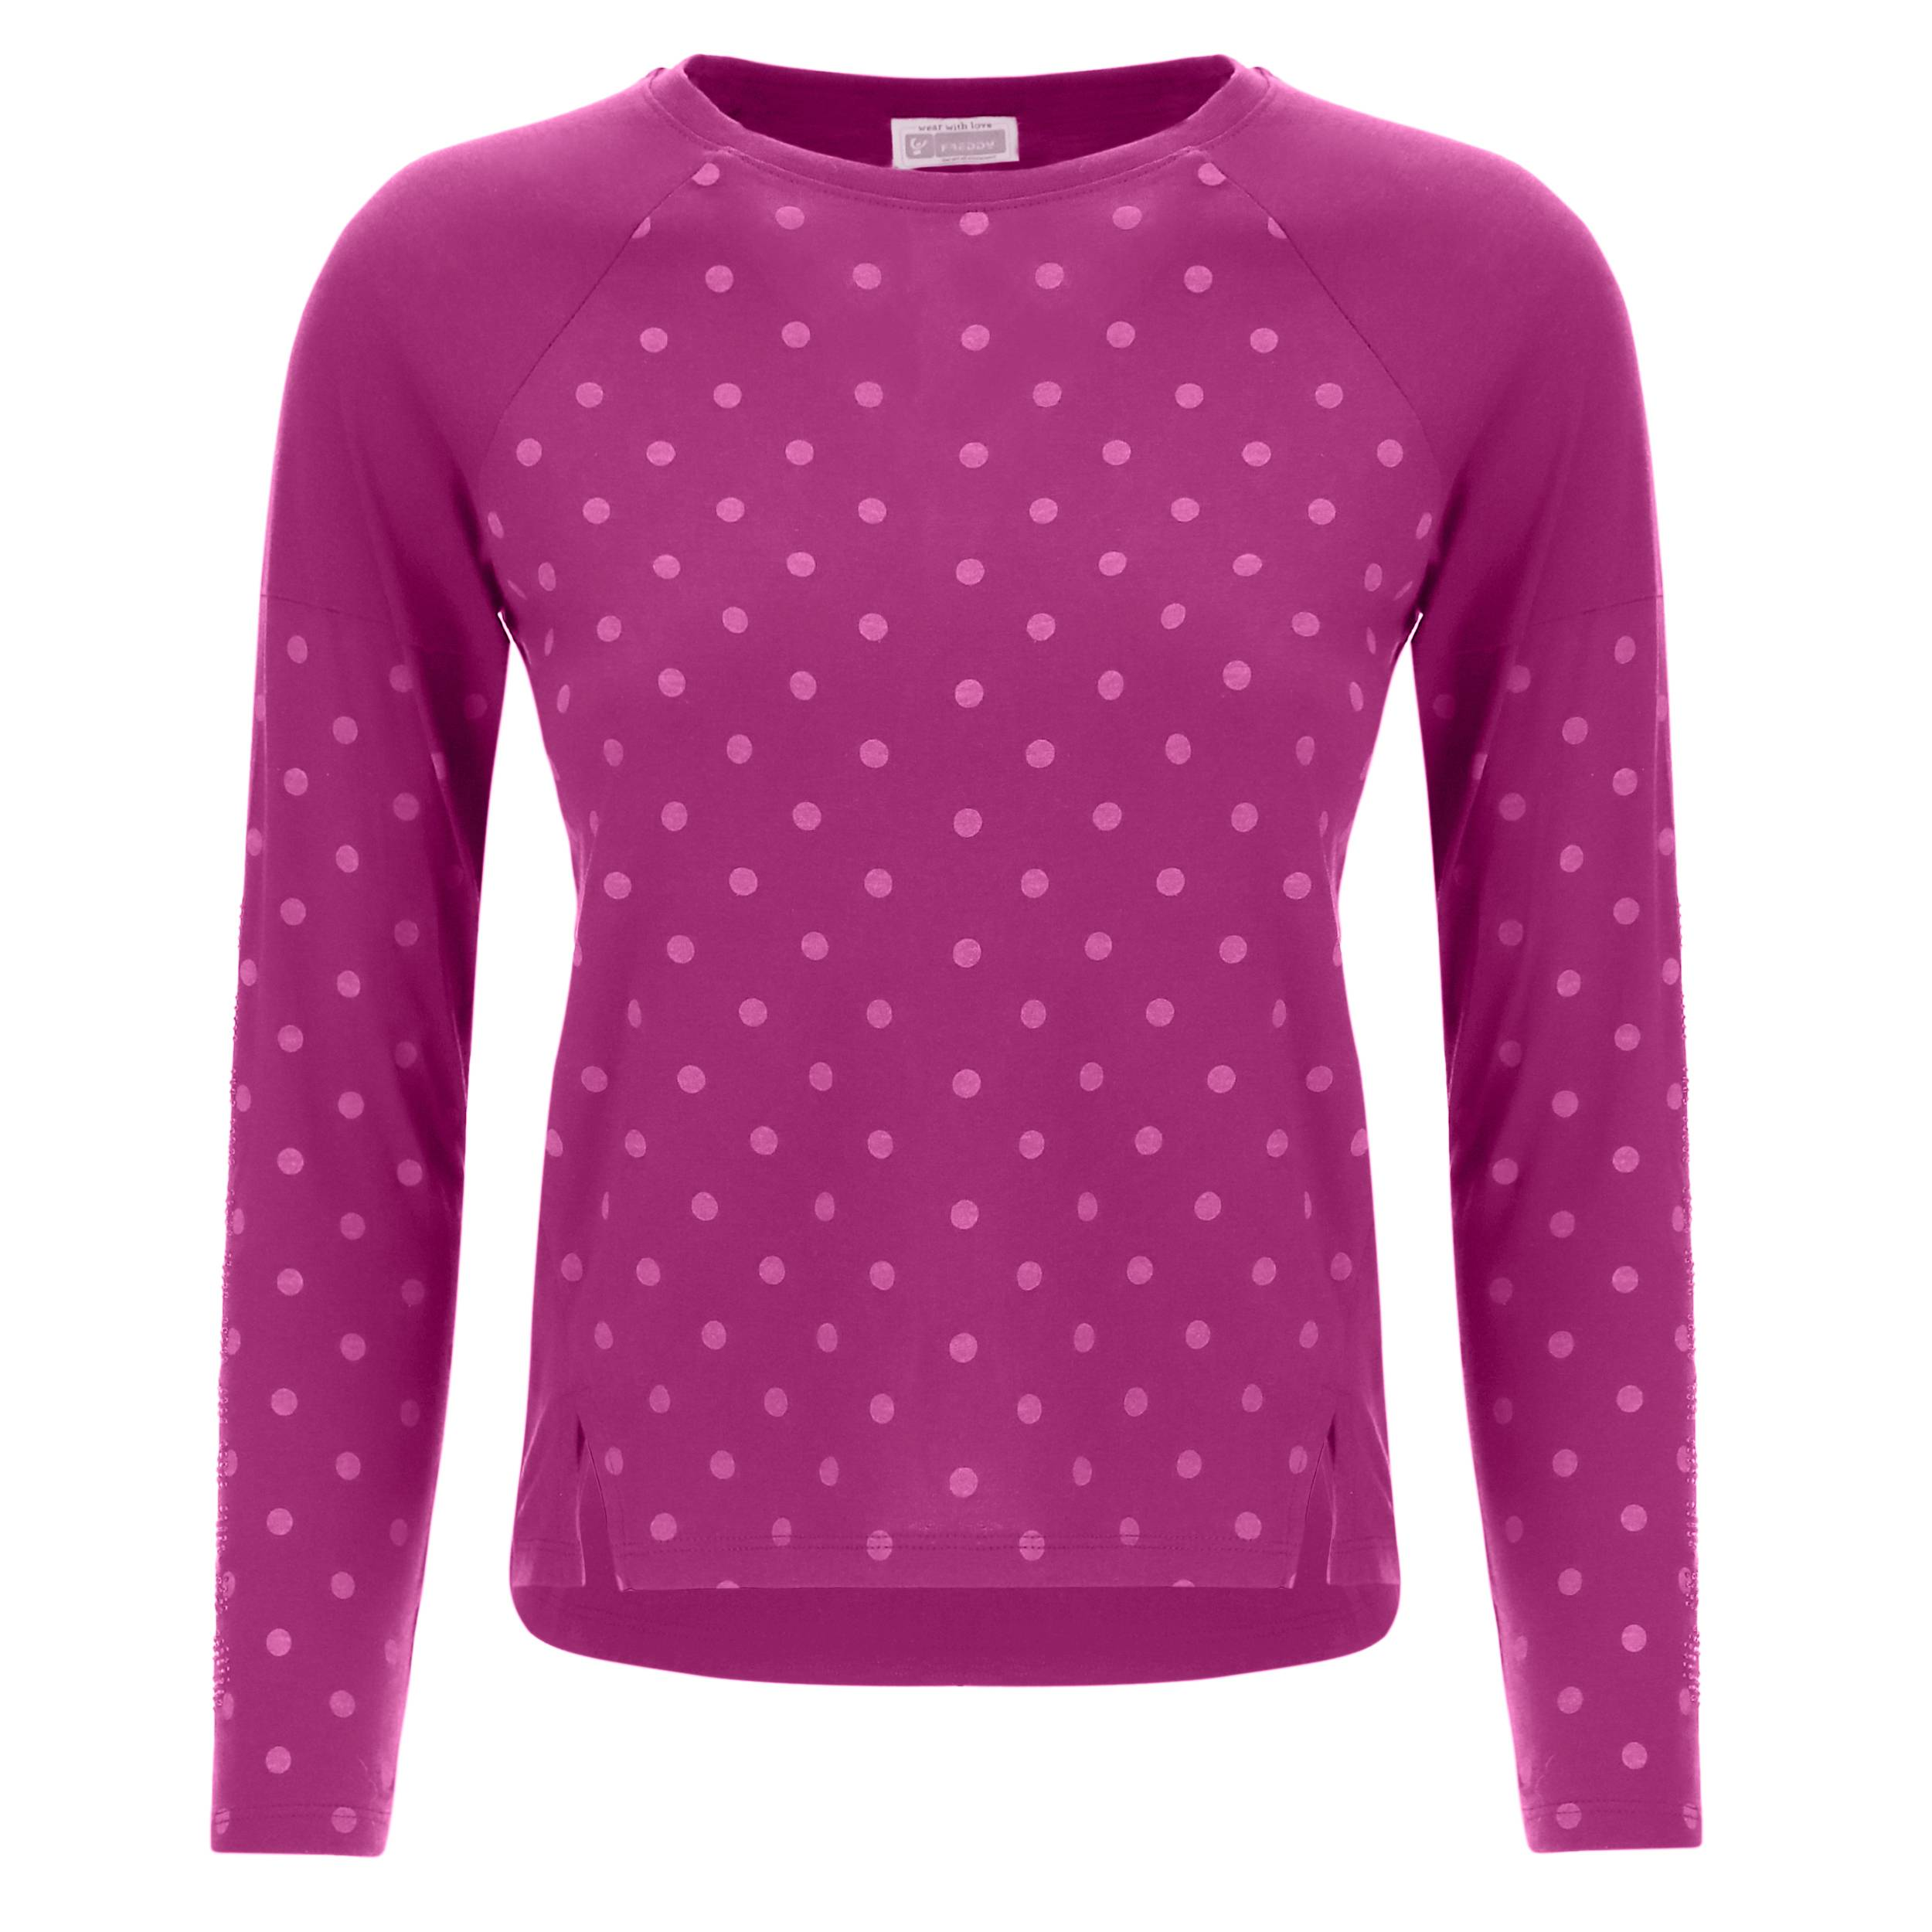 Freddy T-shirt bambina a manica lunga con stampa a pois Purple Wine Pois